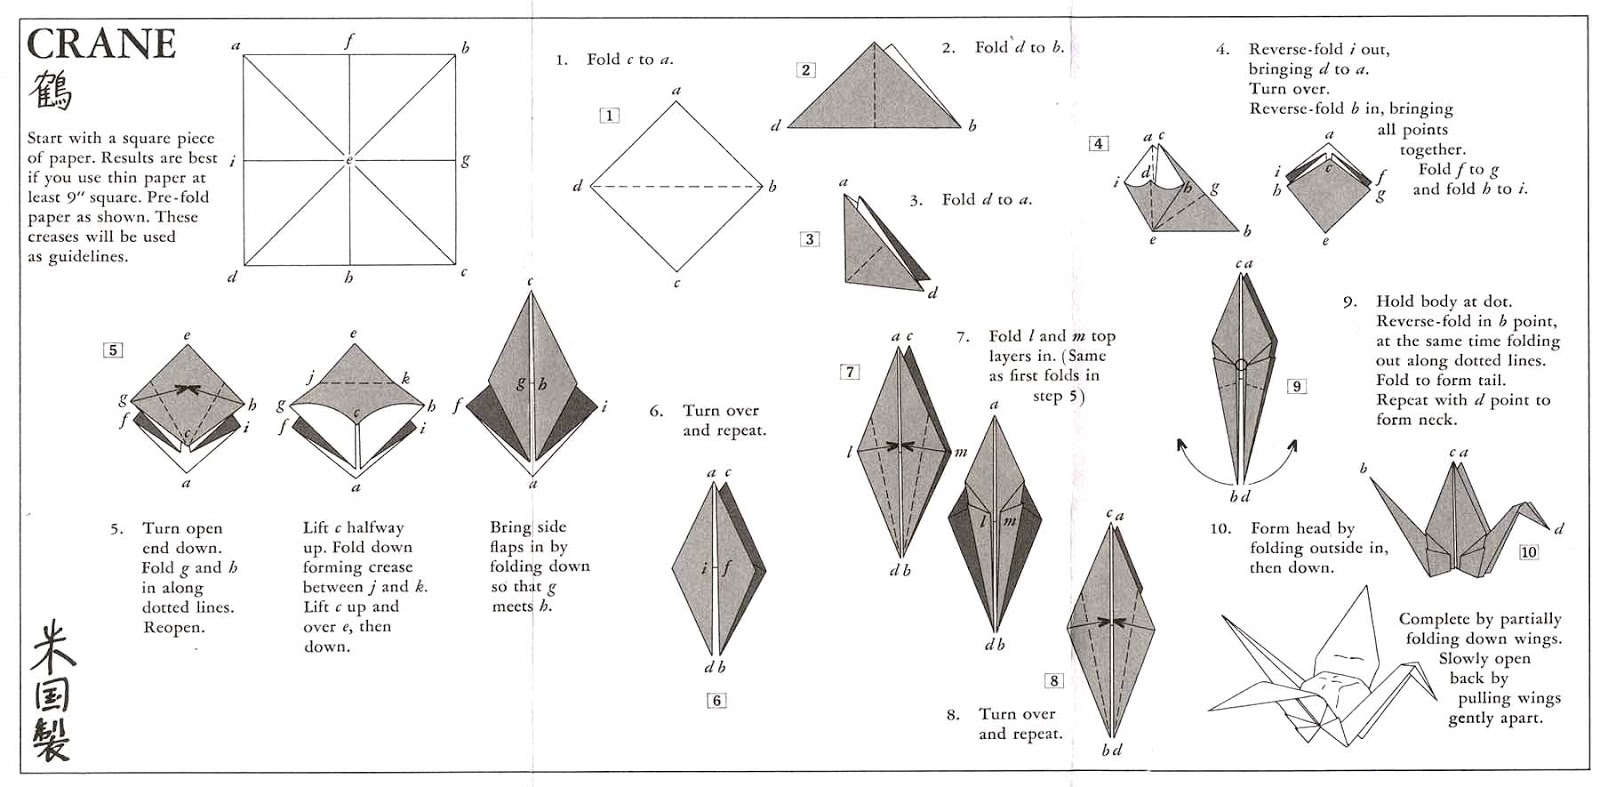 simple origami flying crane diagram internet cable wiring ai nihon 愛日本 farmofminds